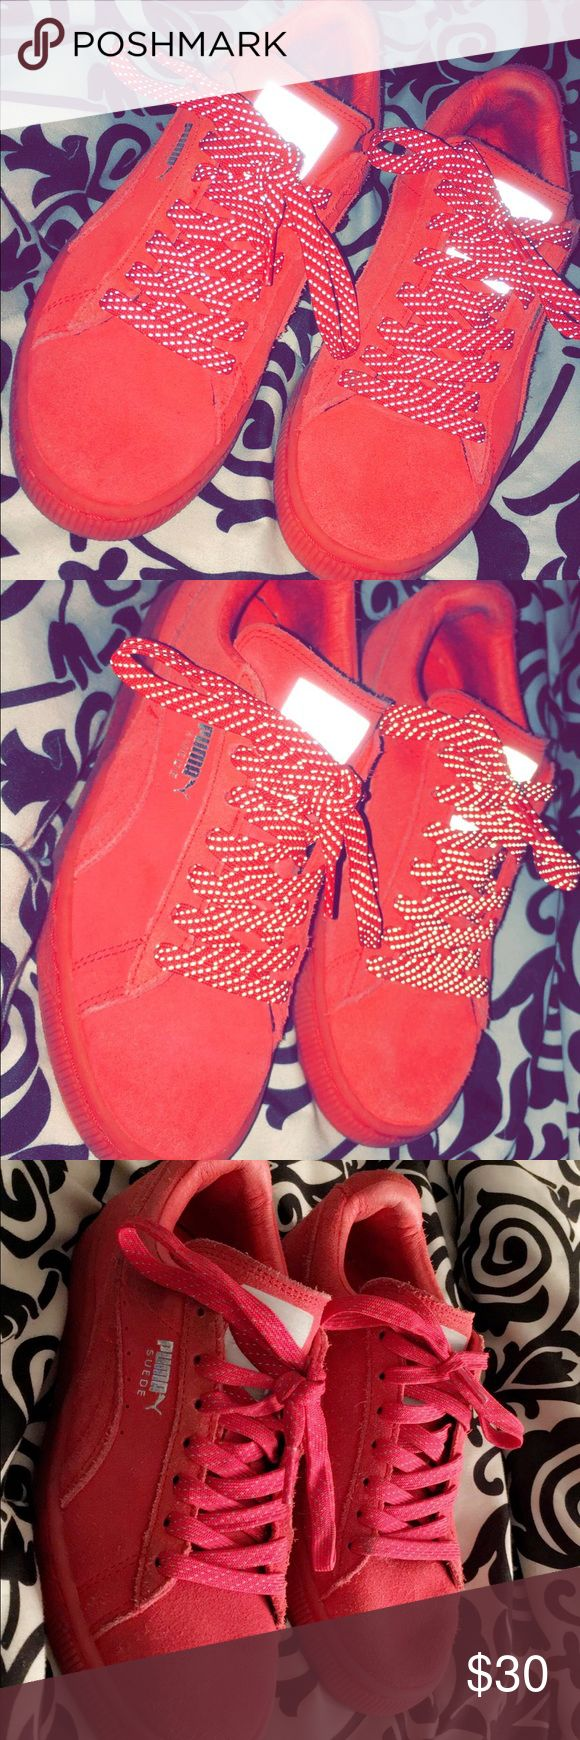 Red suede Puma classics! All red suede puma classics size 5.5, good condition! Puma Shoes Sneakers